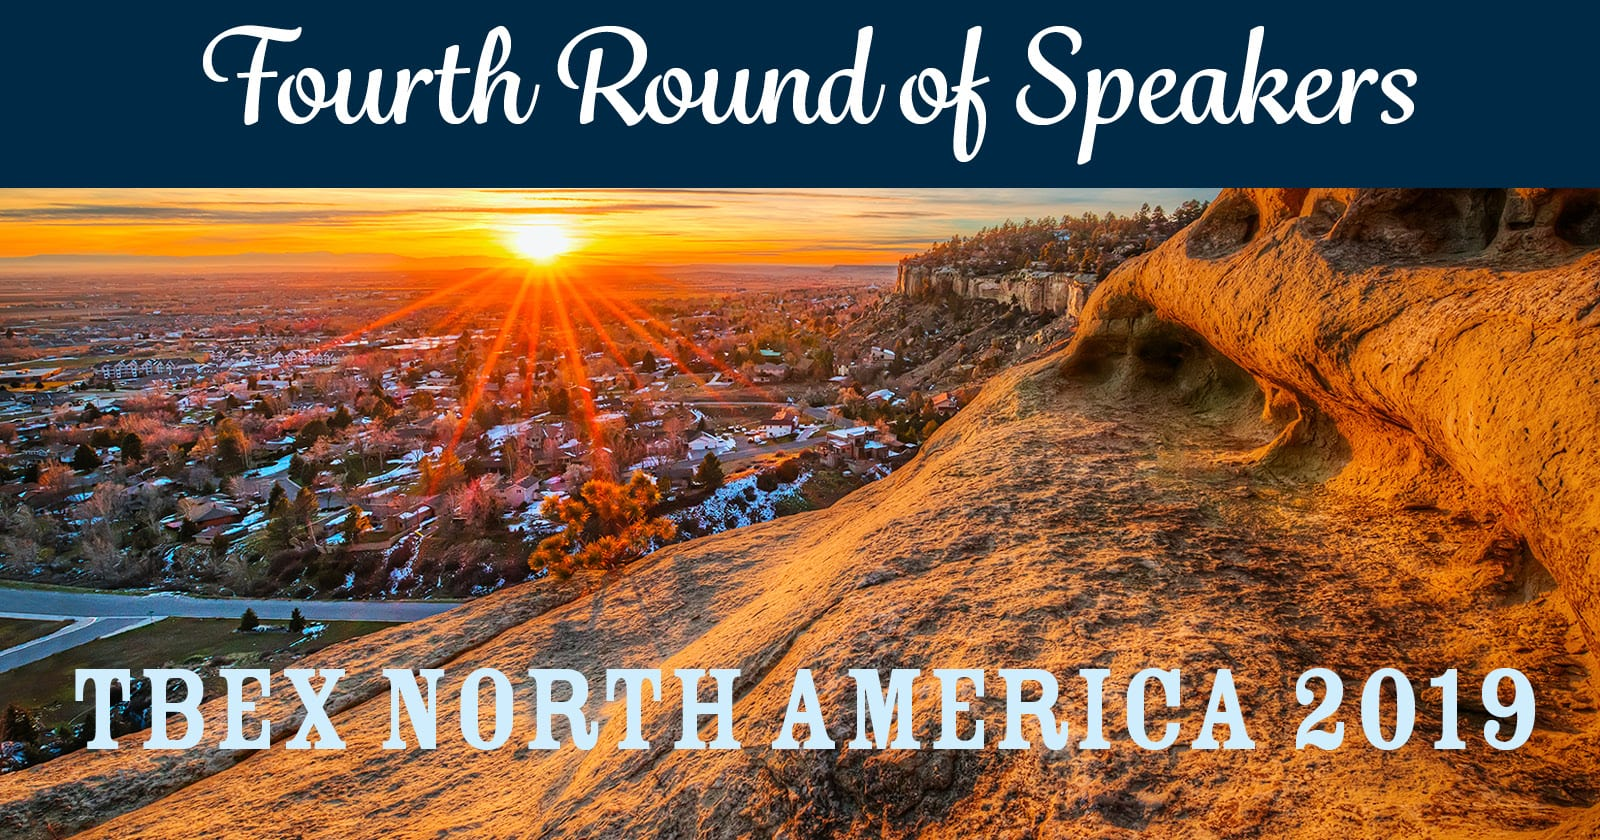 TBEX North America 2019 Speakers